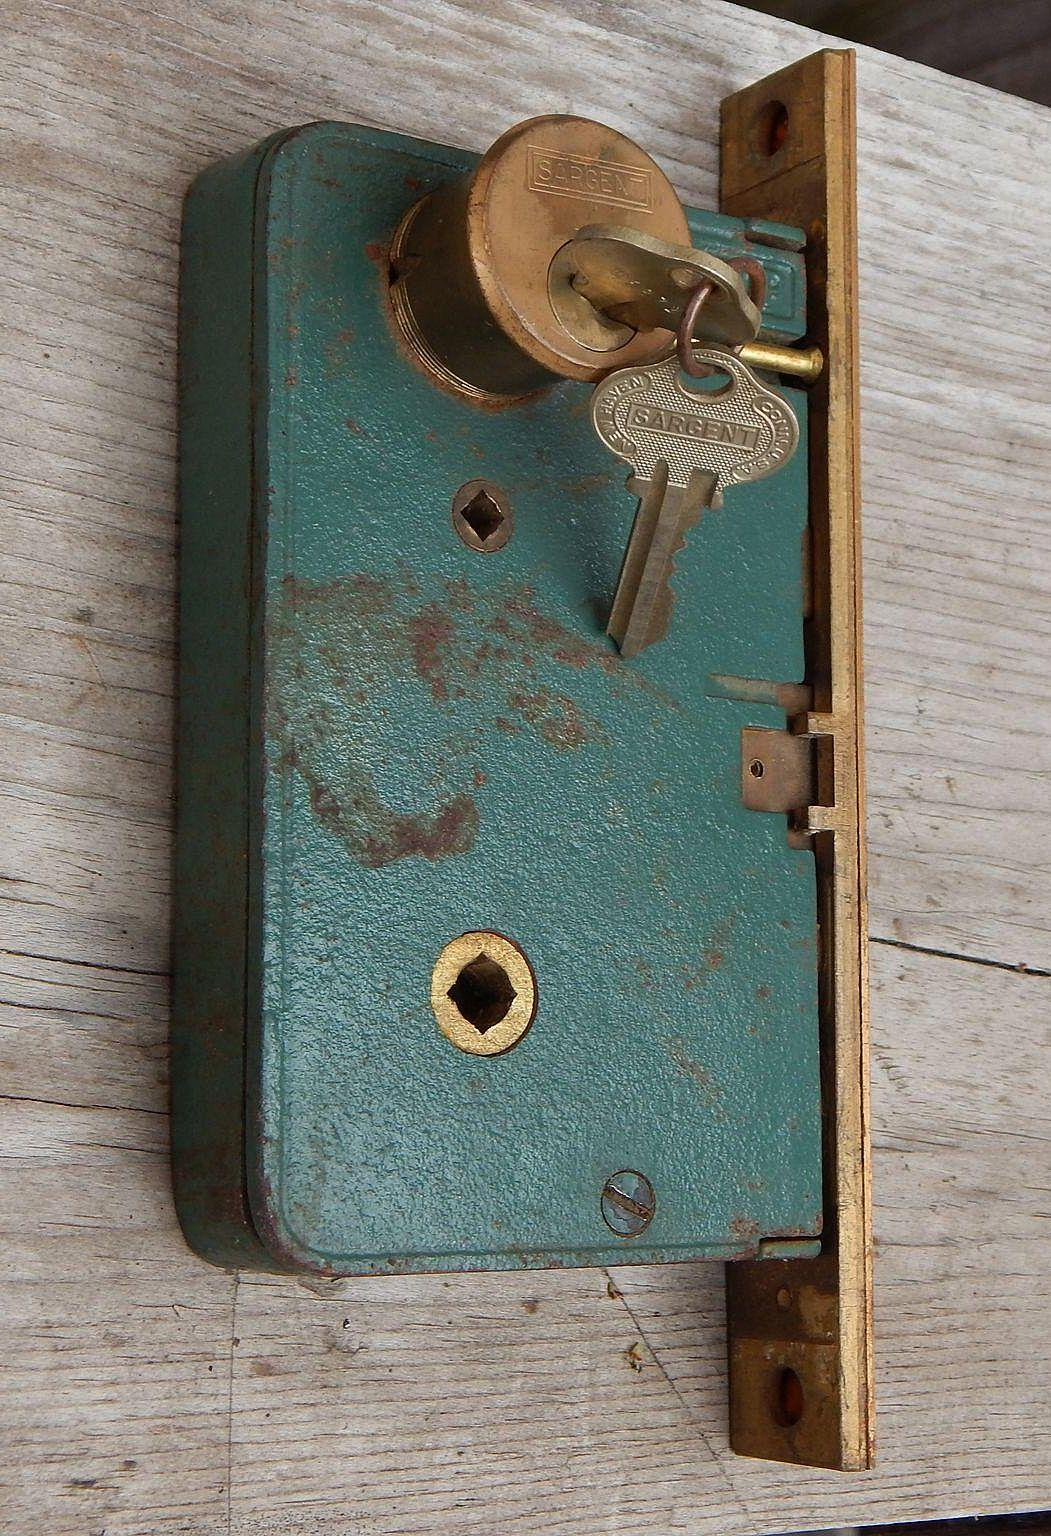 Corbin Entry Door Cast Iron Mortise Lock With Sargent